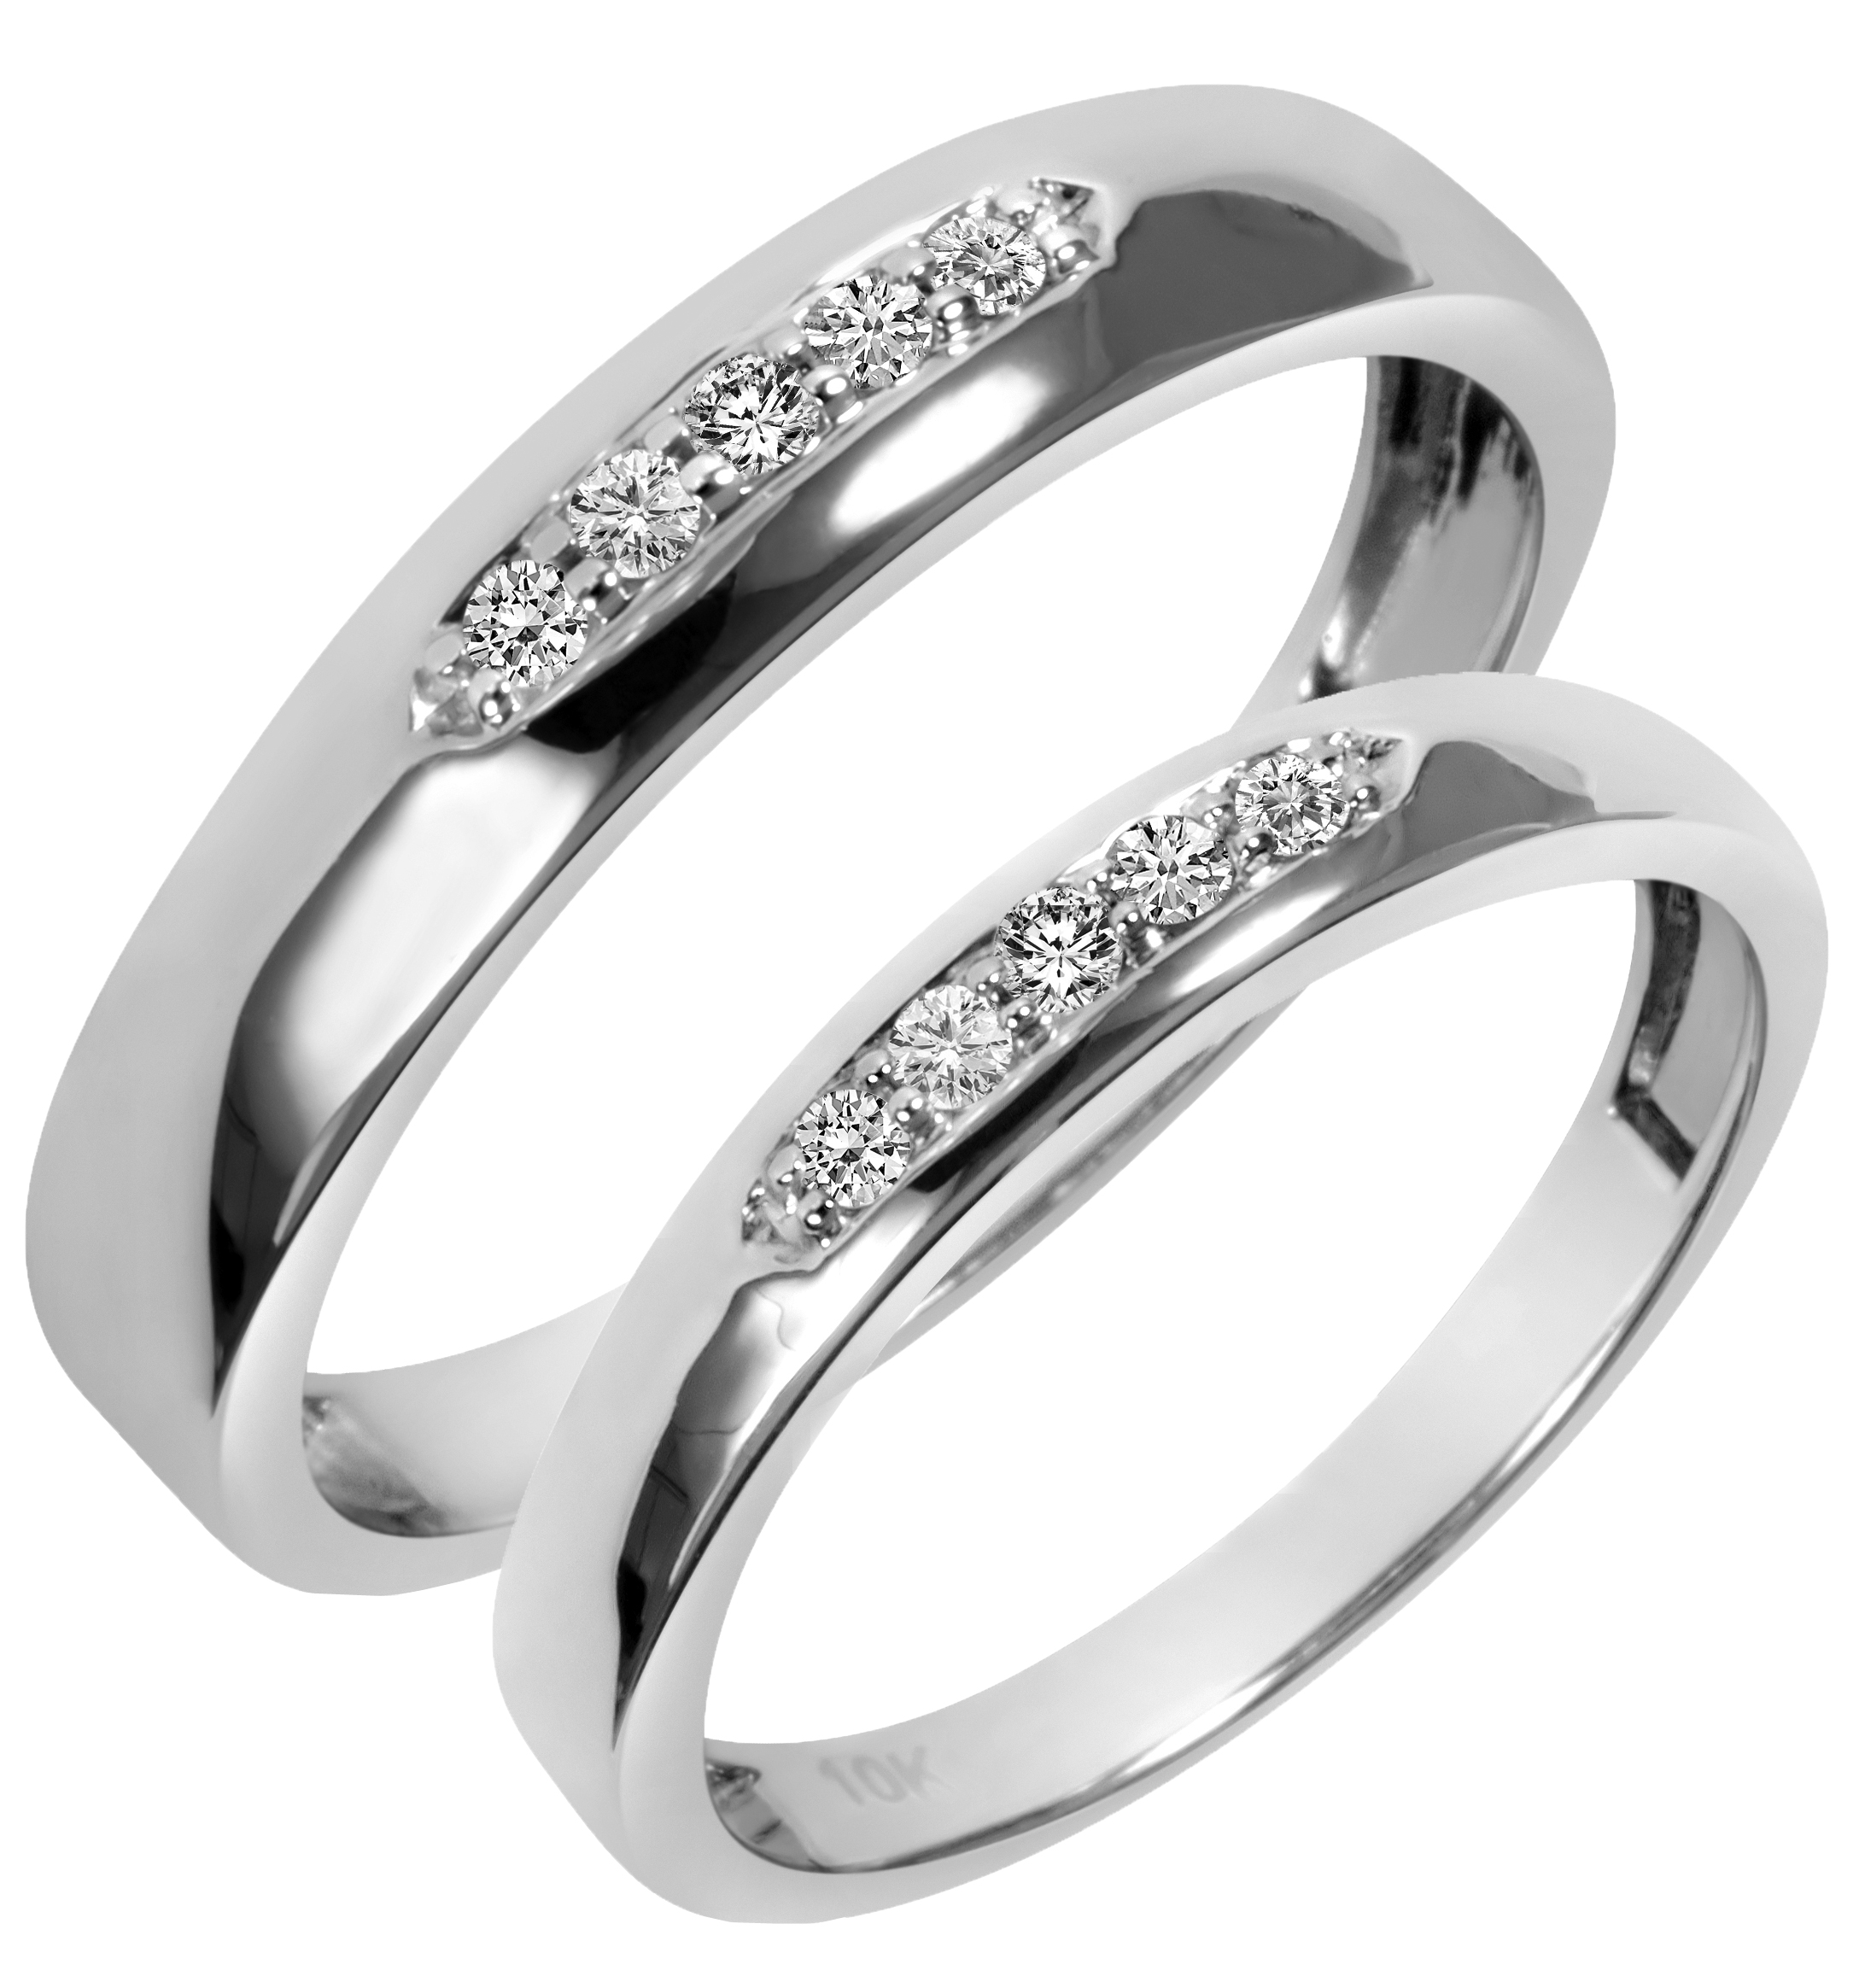 15 carat tw diamond his and hers wedding band set 14k white gold my trio rings wb522w14k - White Gold Wedding Rings Sets